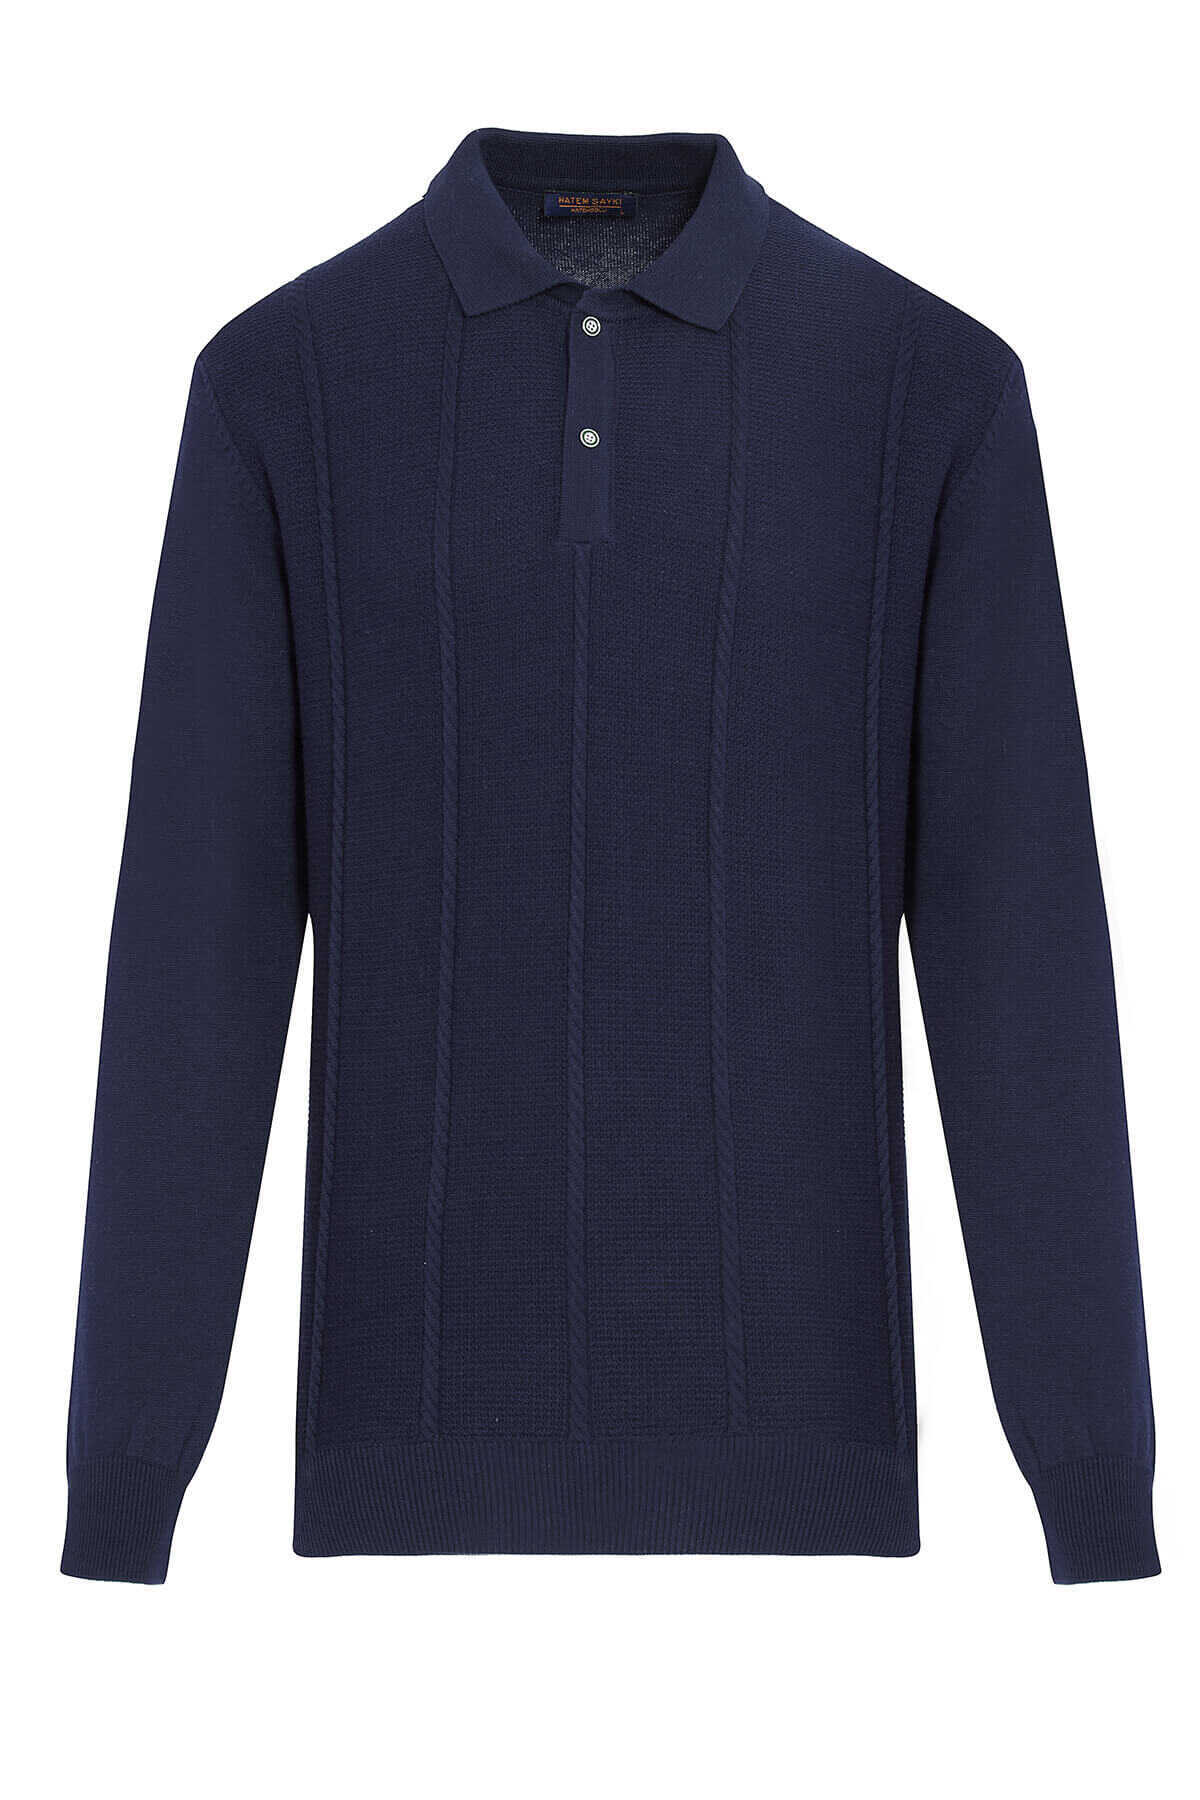 - Navy Polo Neck Buttoned Sweater